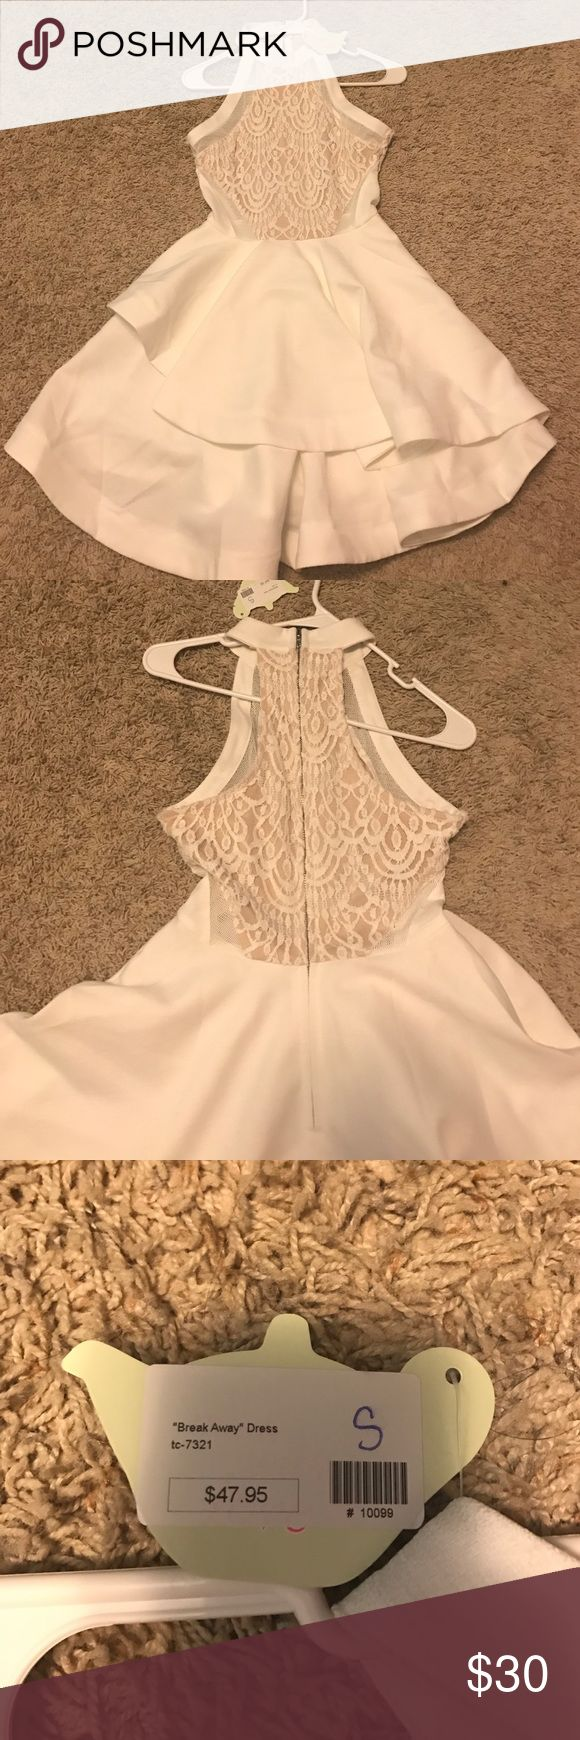 White dress dream meaning - Nwt White Dress Beautiful White Dress Nice Durable Material Tea N Cup Dresses